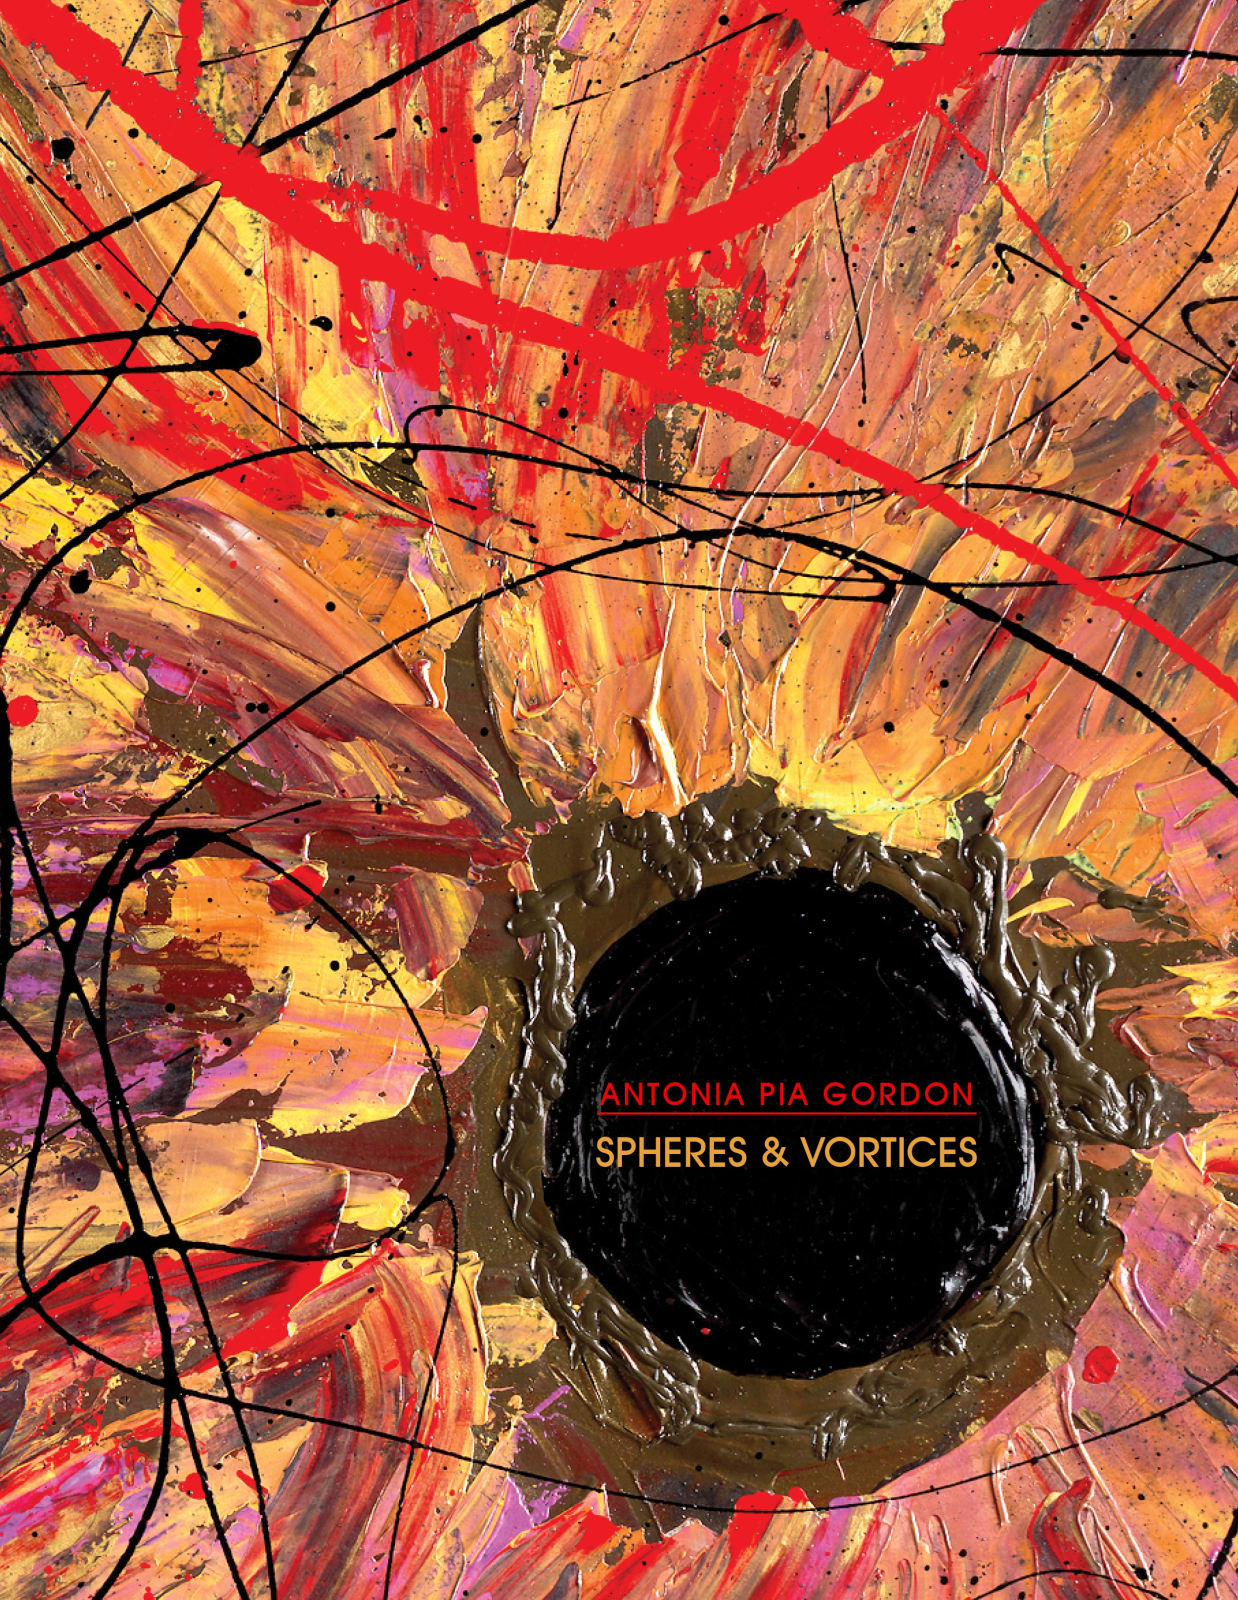 SPHERES & VORTICES DOWNLOAD PDF HERE